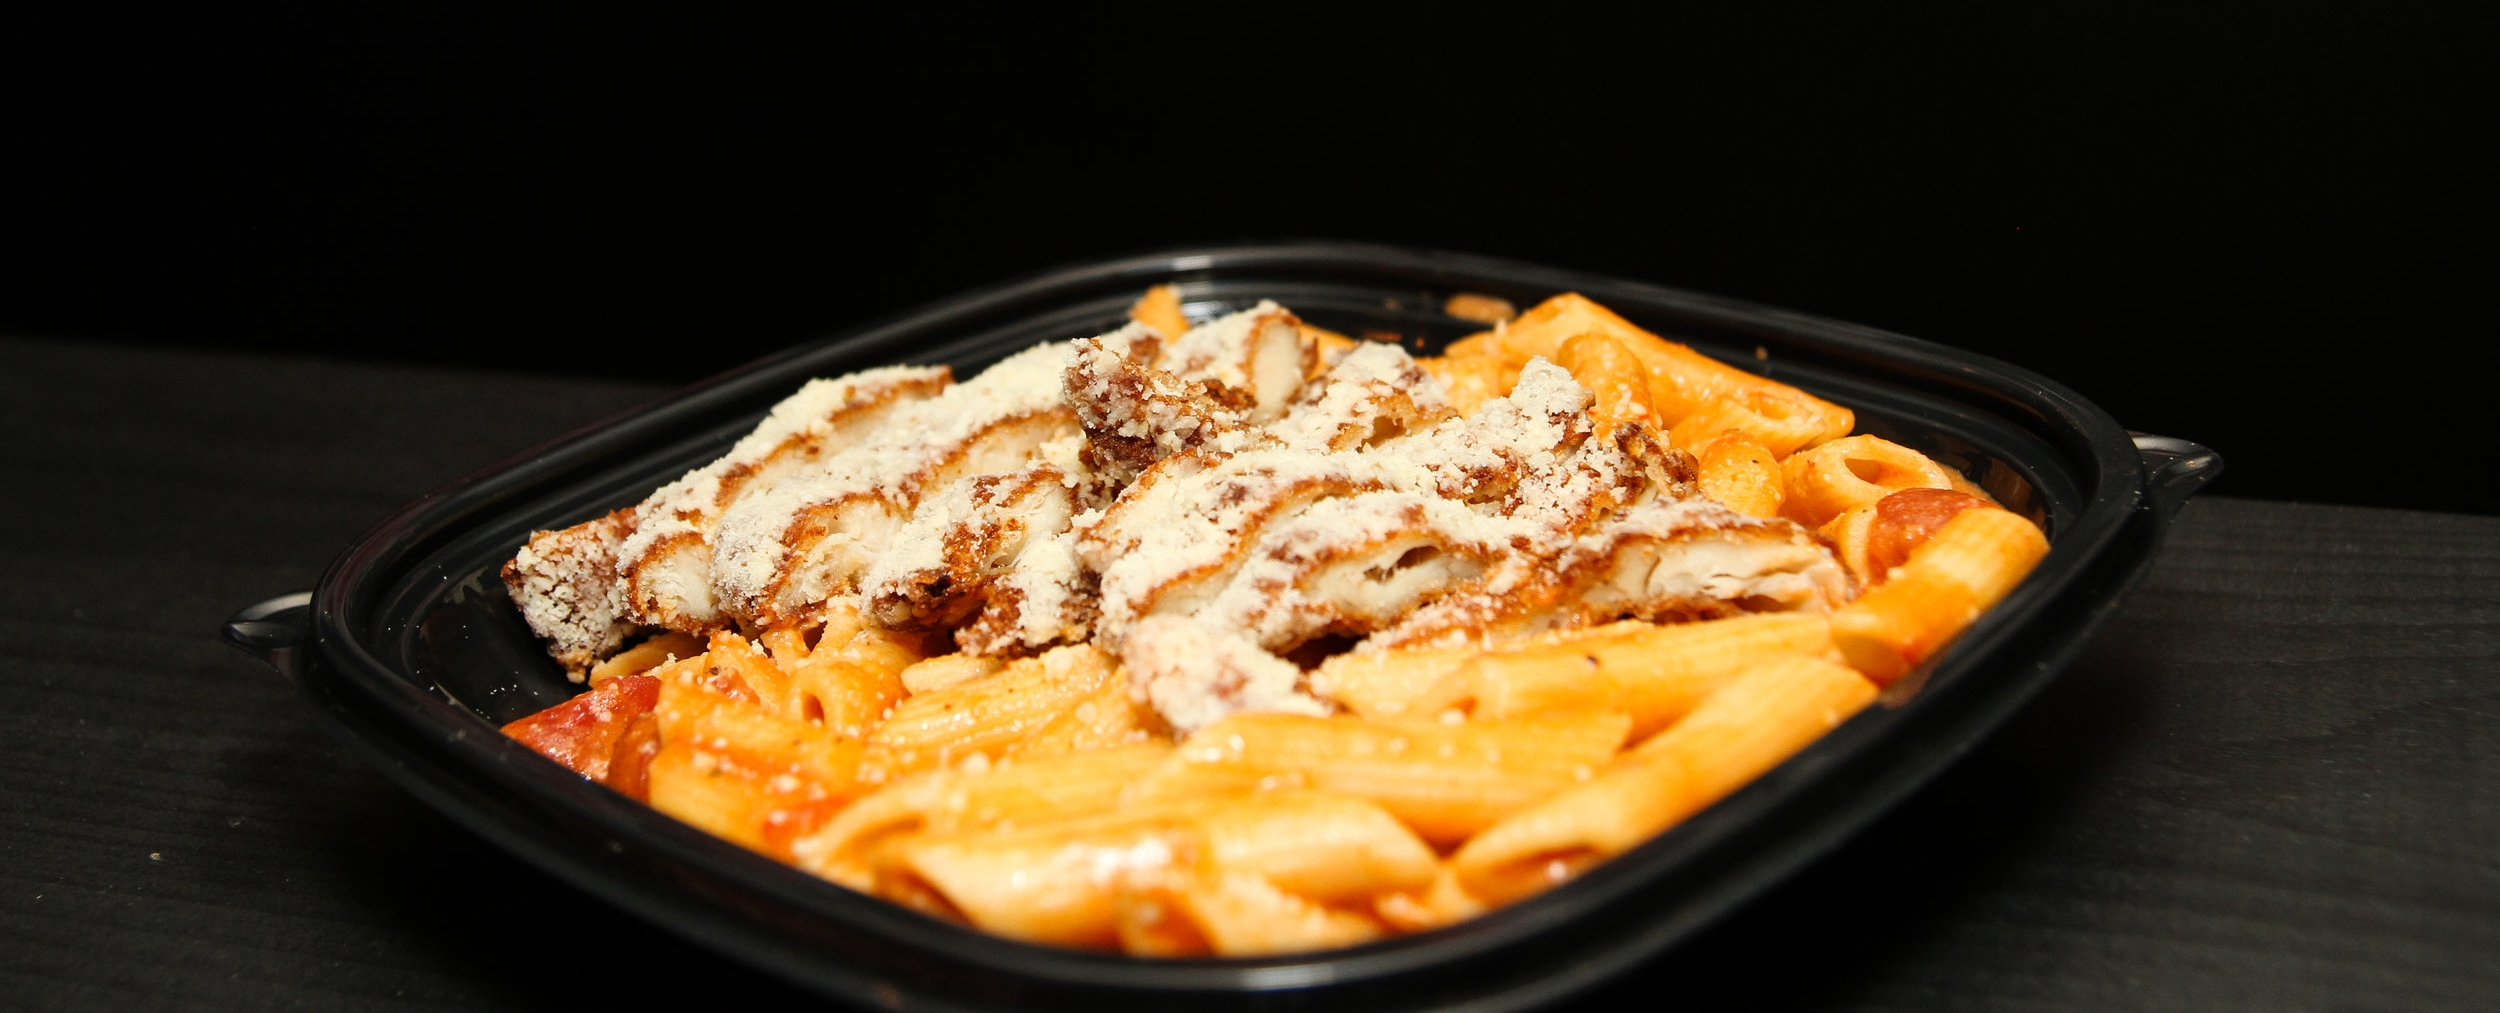 Pene with Roman Crusted Chicken